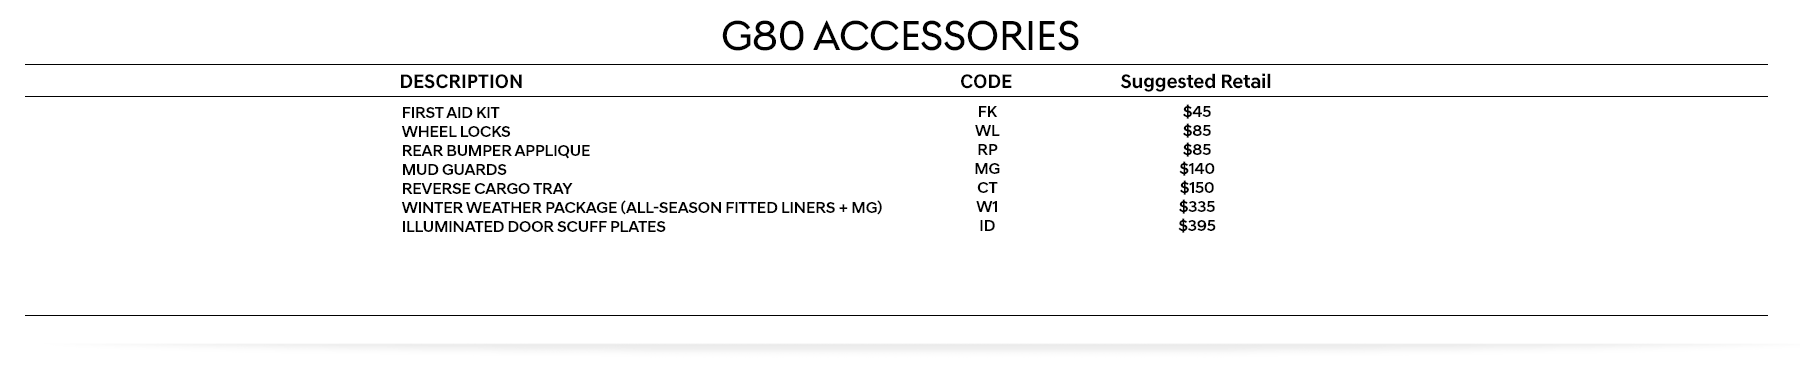 G80_accessories.png